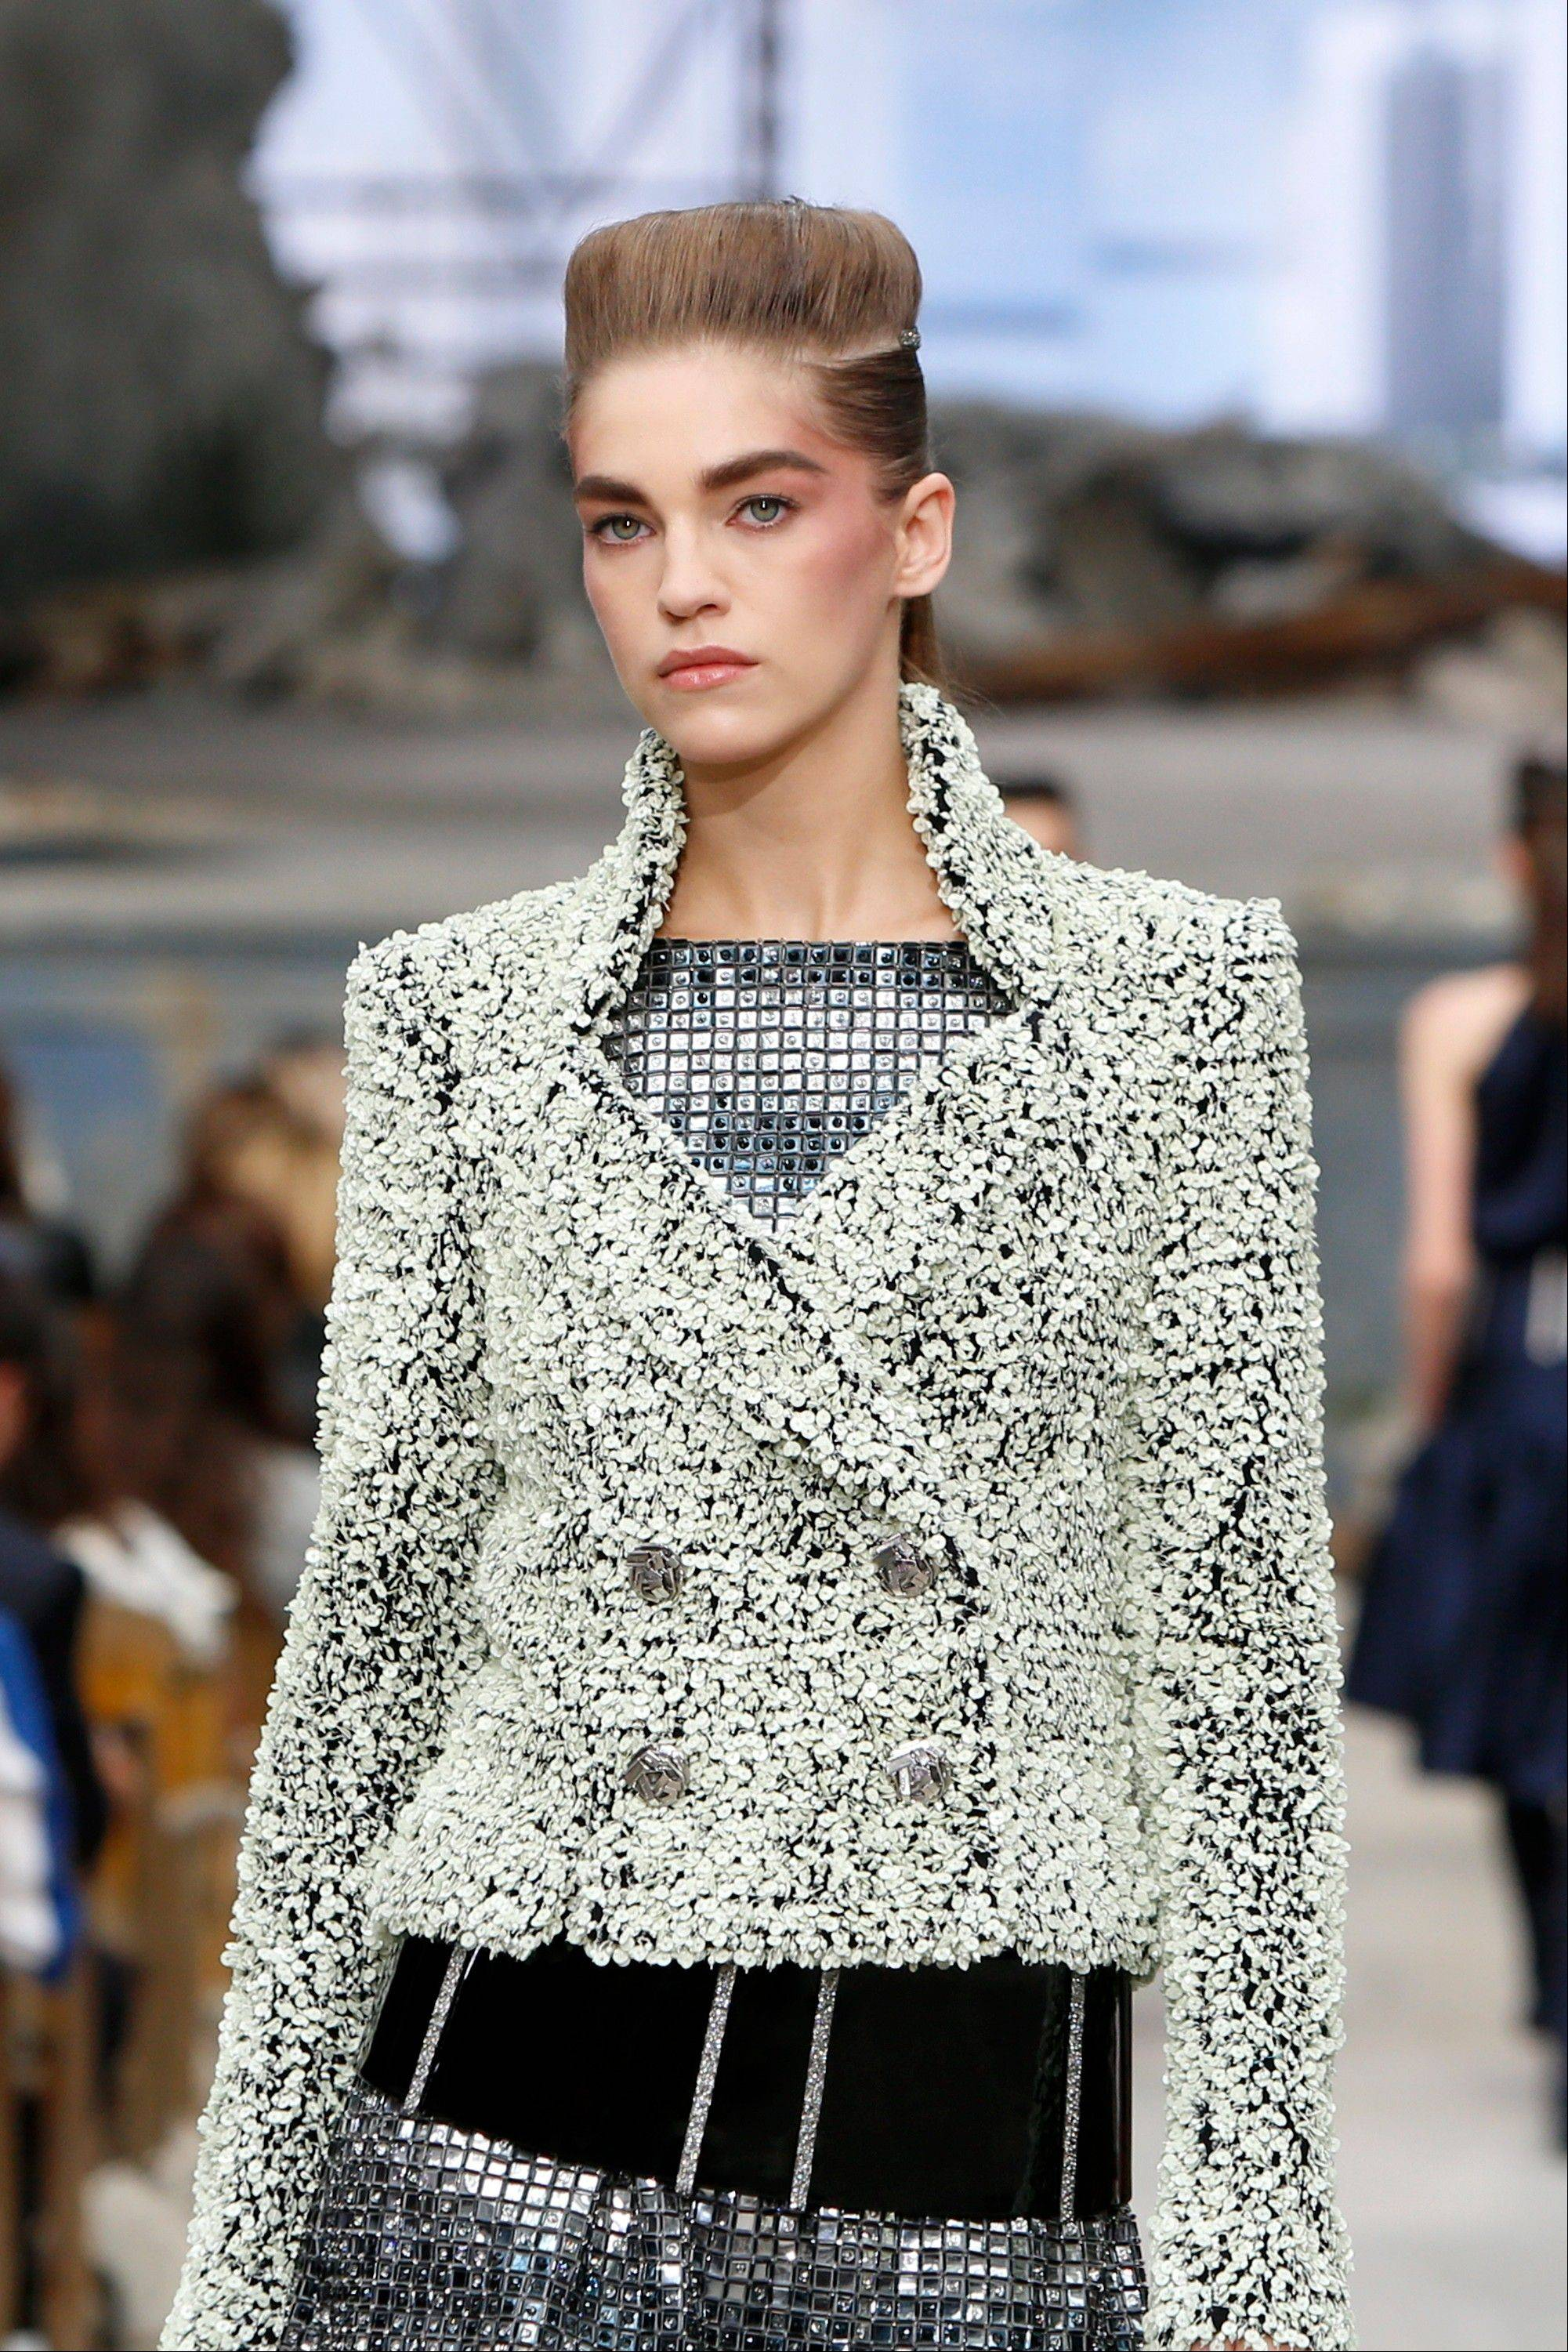 A model wears a creation by German fashion designer Karl Lagerfeld for Chanel's Haute Couture Fall-Winter 2013-2014 collection.